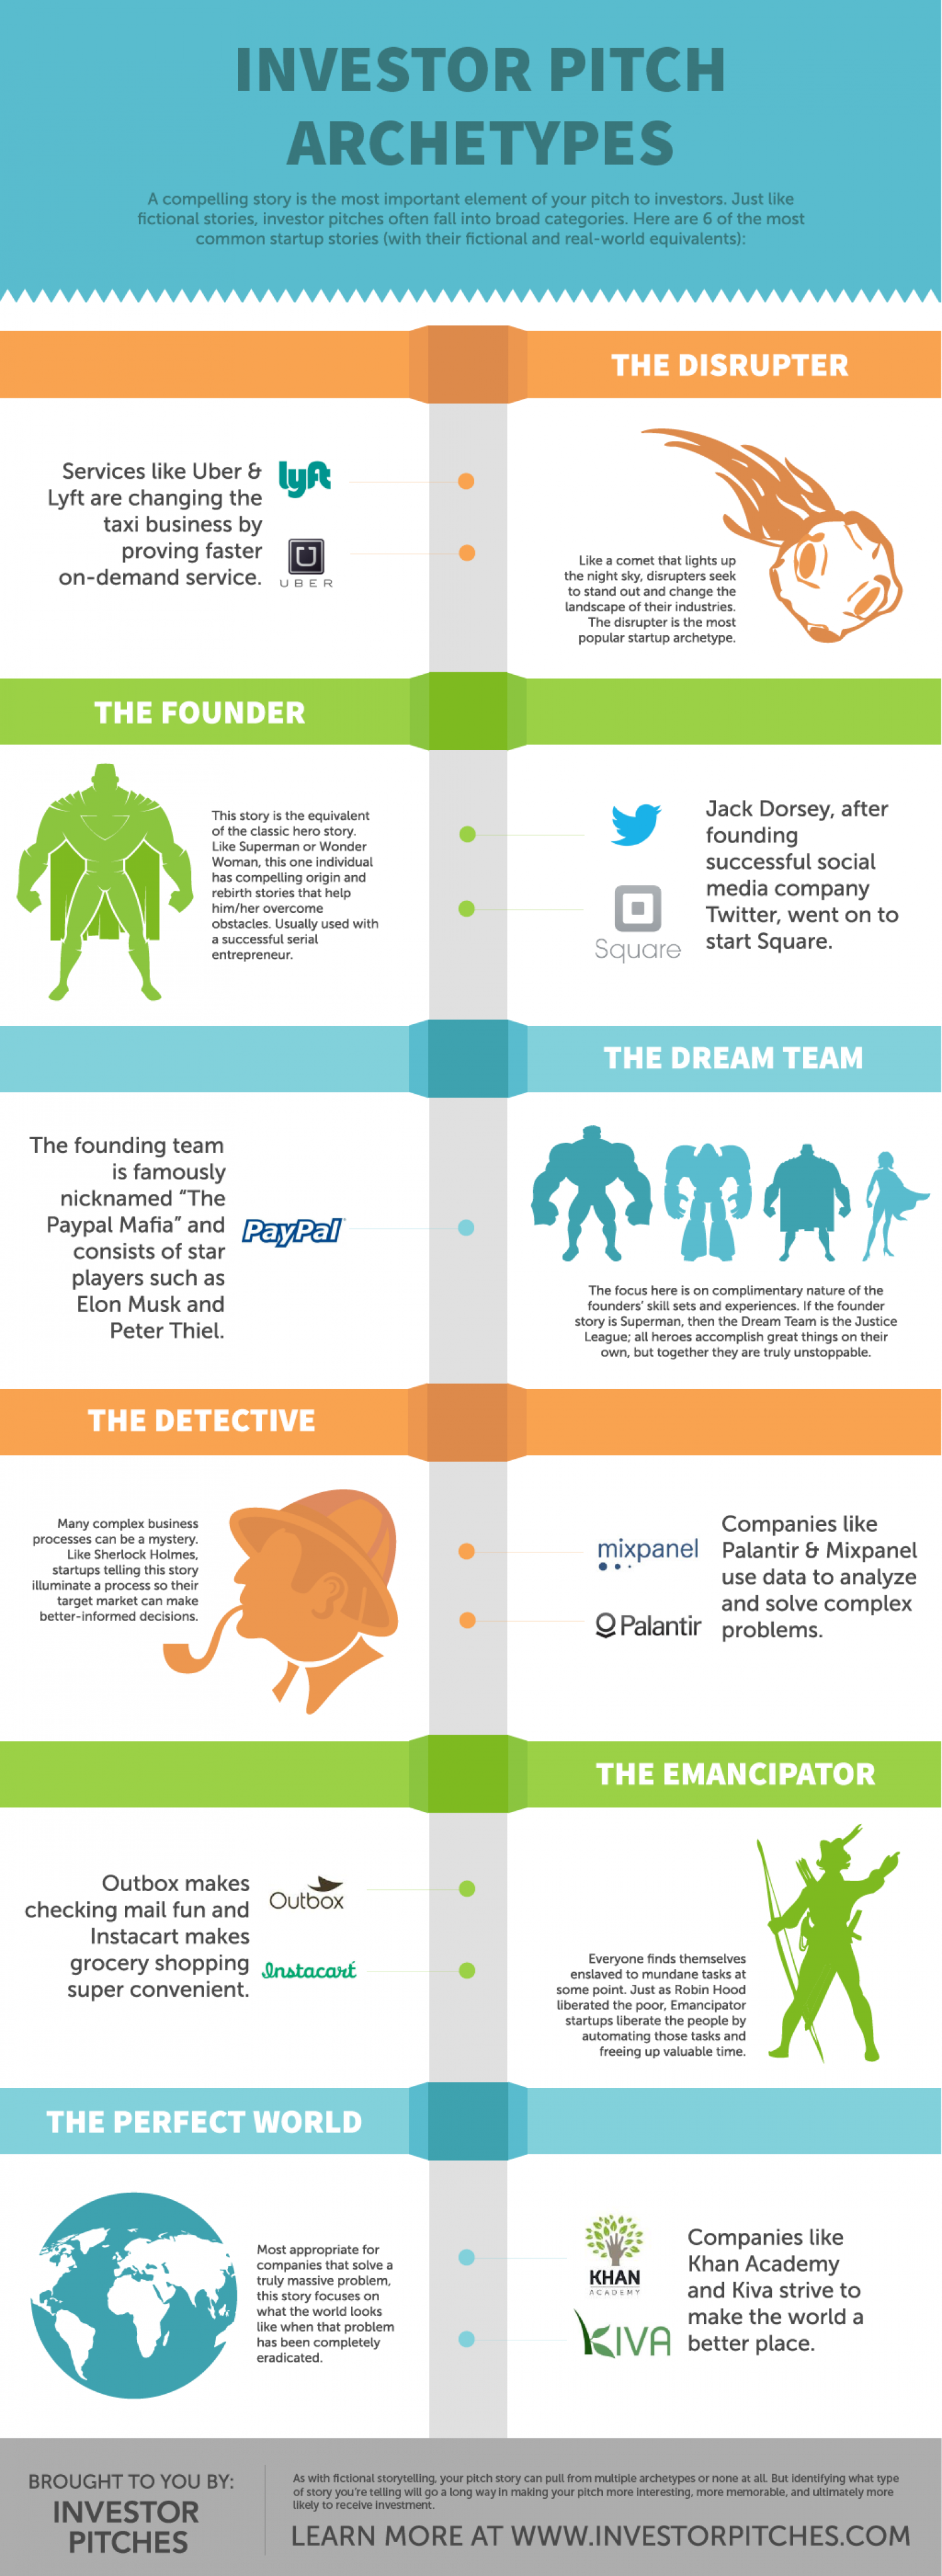 Investor Pitch Archetypes Infographic